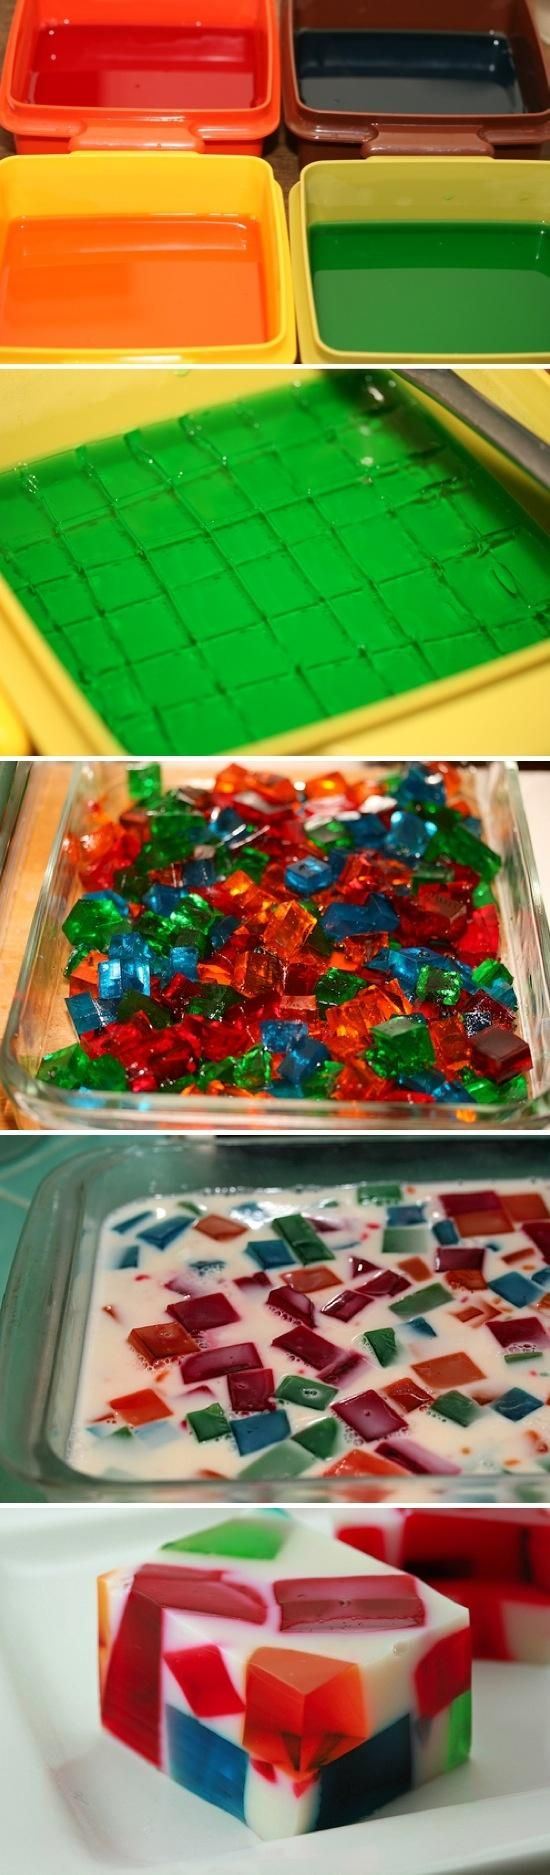 Broken Glass Jello - No reciepe listed, but I bet we could figure it out...does anyone know what the jello is floating in?